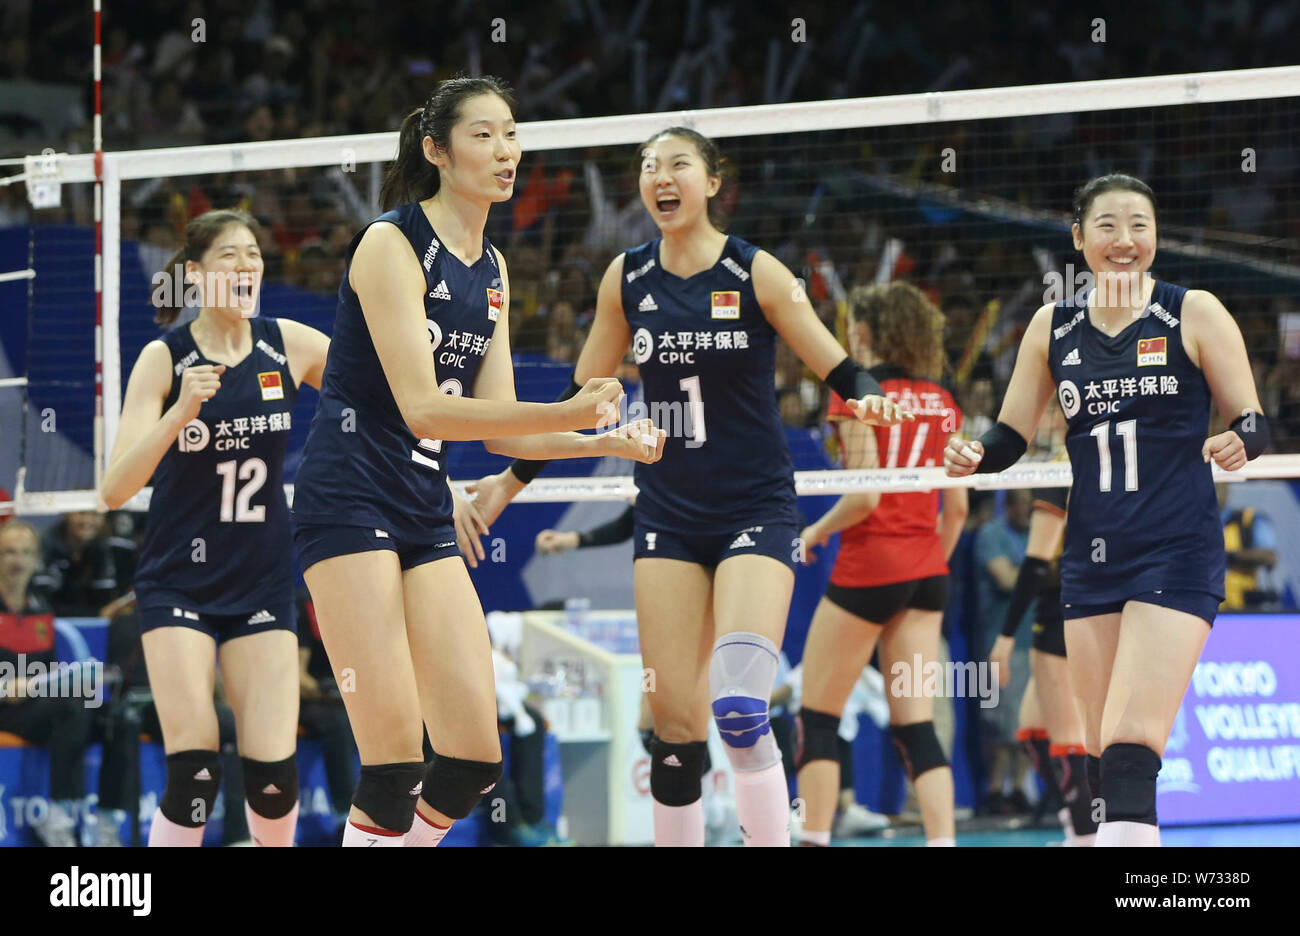 China Women S National Volleyball Team Celebrate After Scoring During The 2019 Fivb Women S Volleyball Intercontinental Olympic